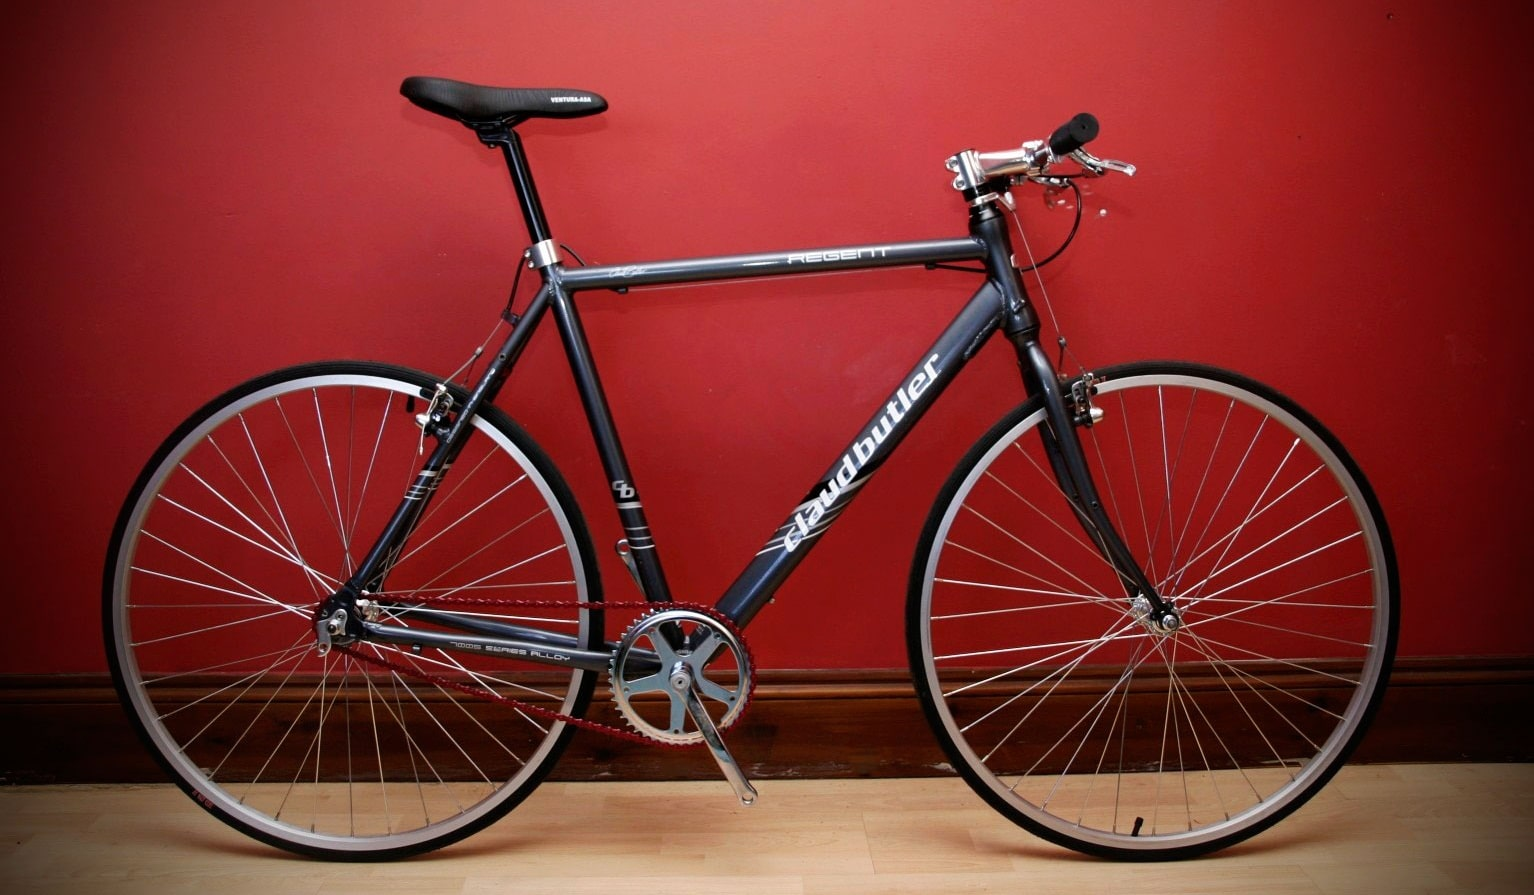 Best Single Speed Hybrid Bike